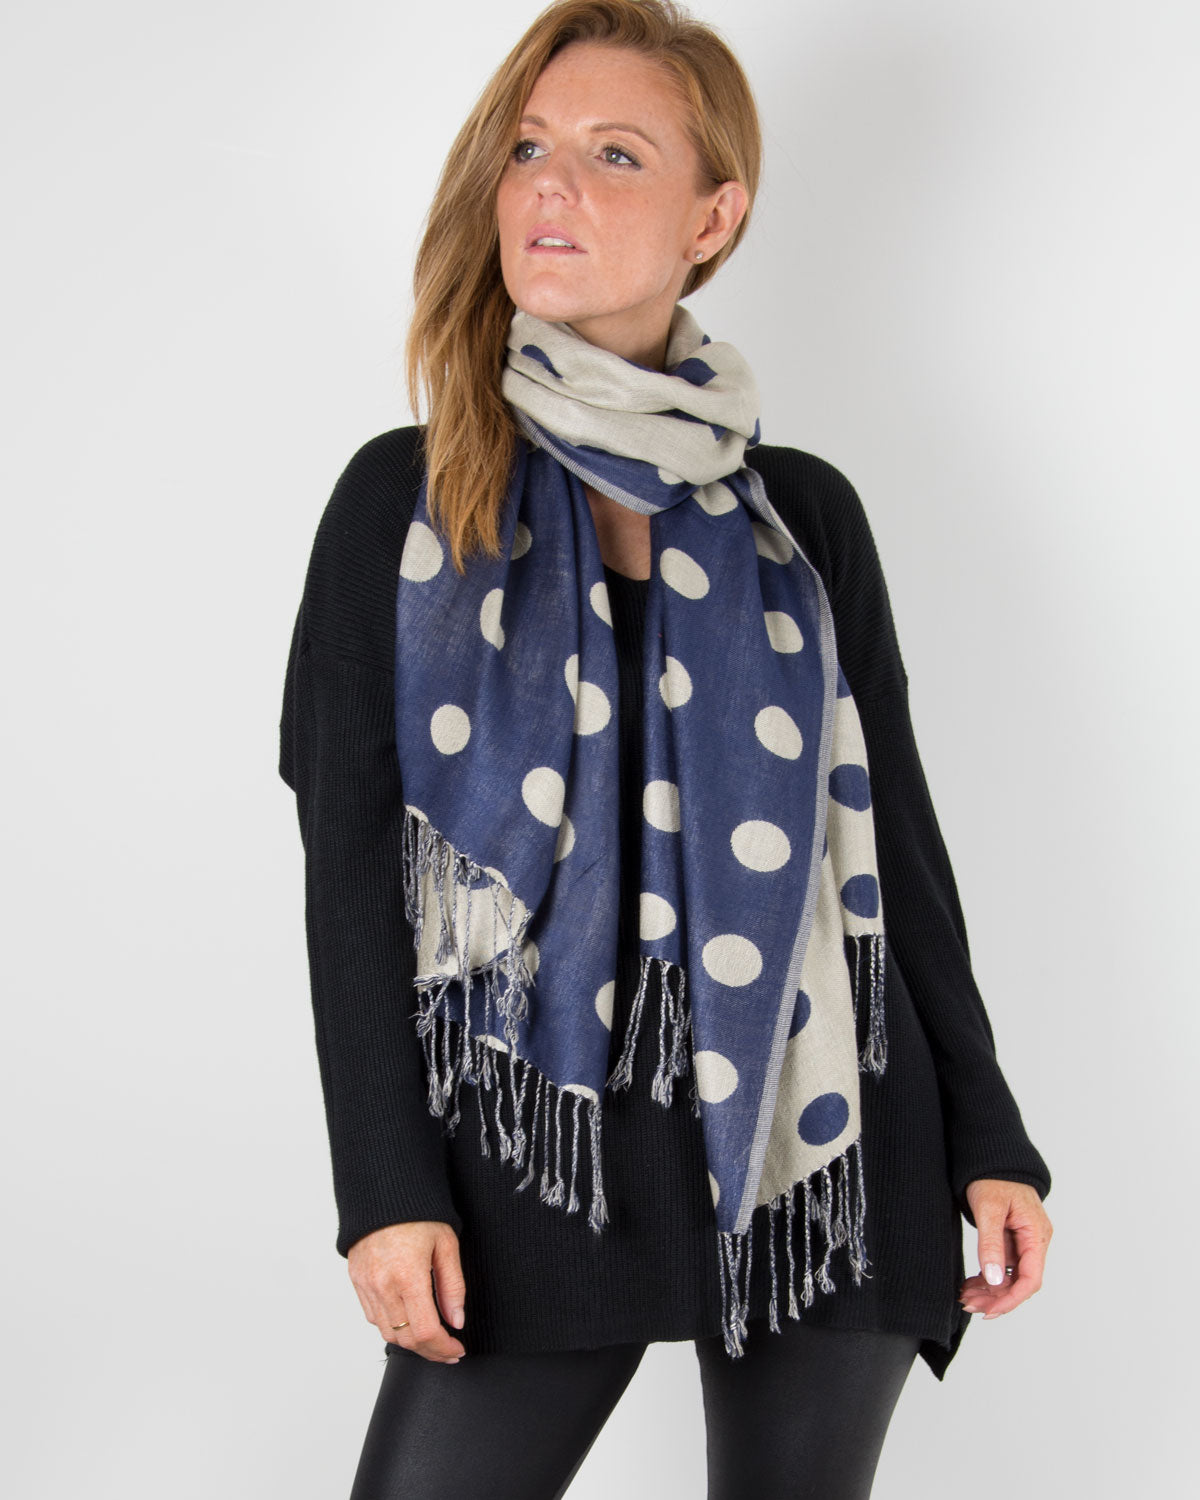 an image showing a blue spotty pashmina